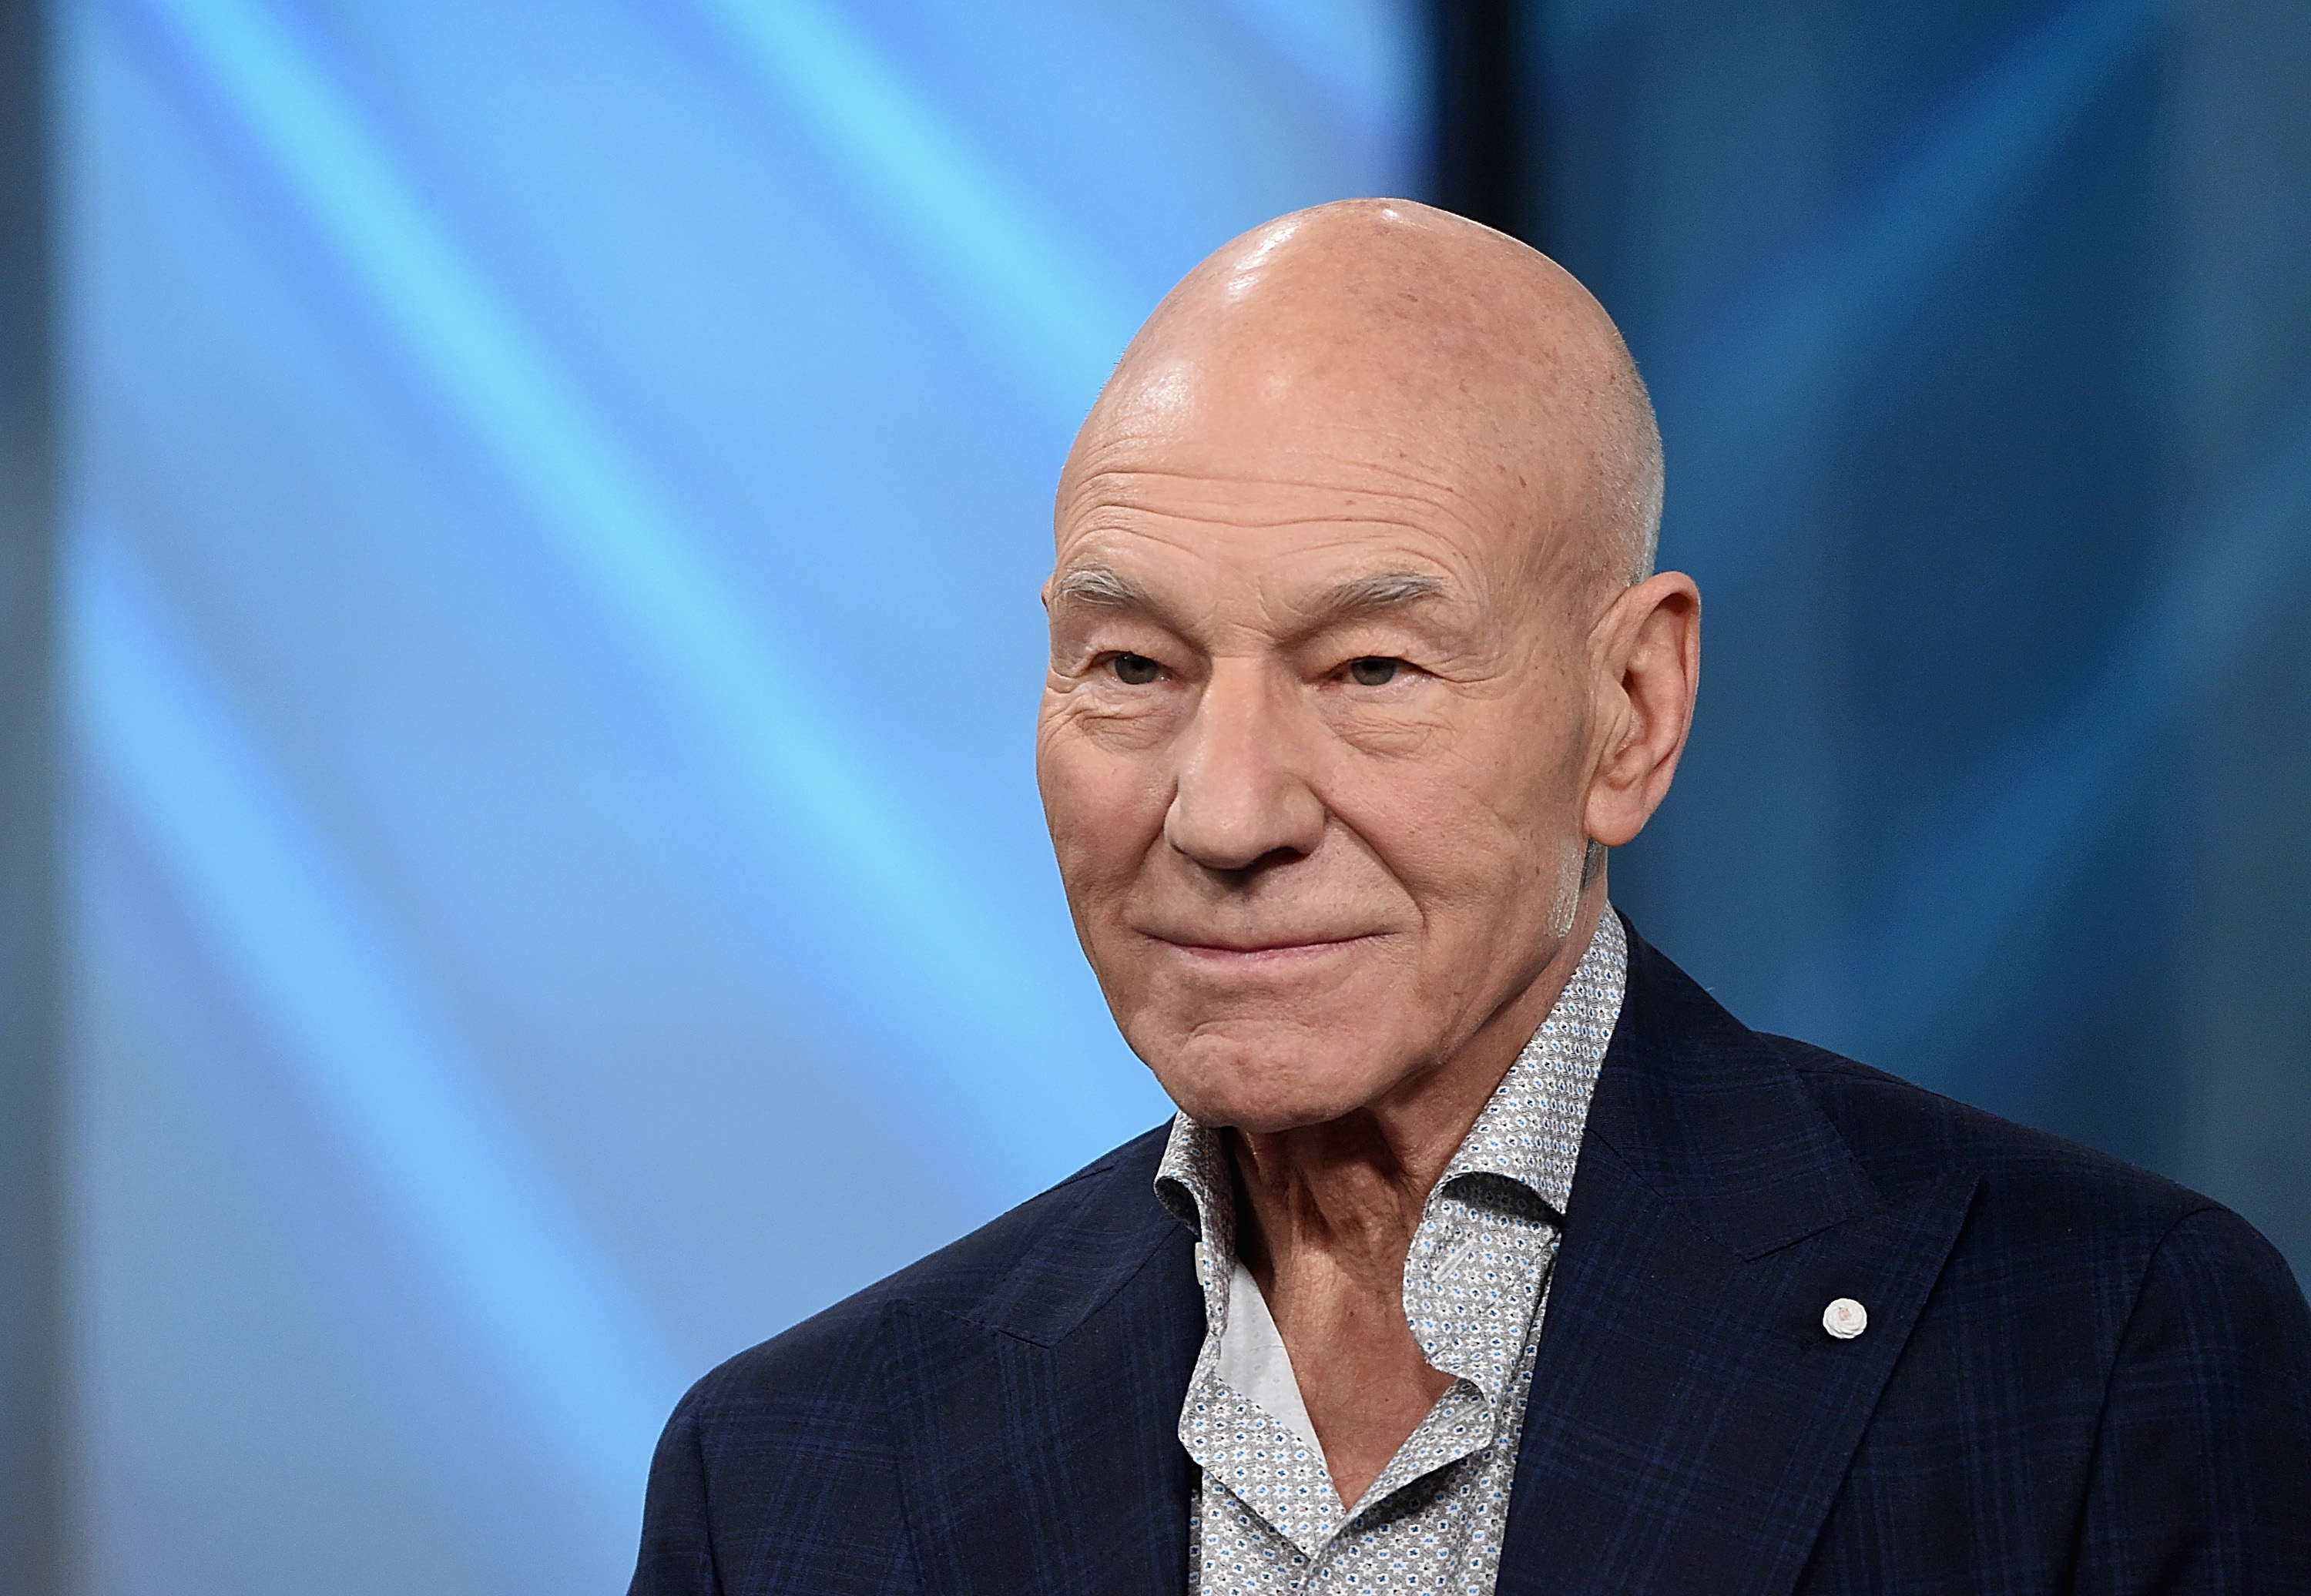 Patrick Stewart attends the Build Series Presents Hugh Jackman And Patrick Stewart Discussing  Logan  at Build Studio on March 2, 2017 in New York City.